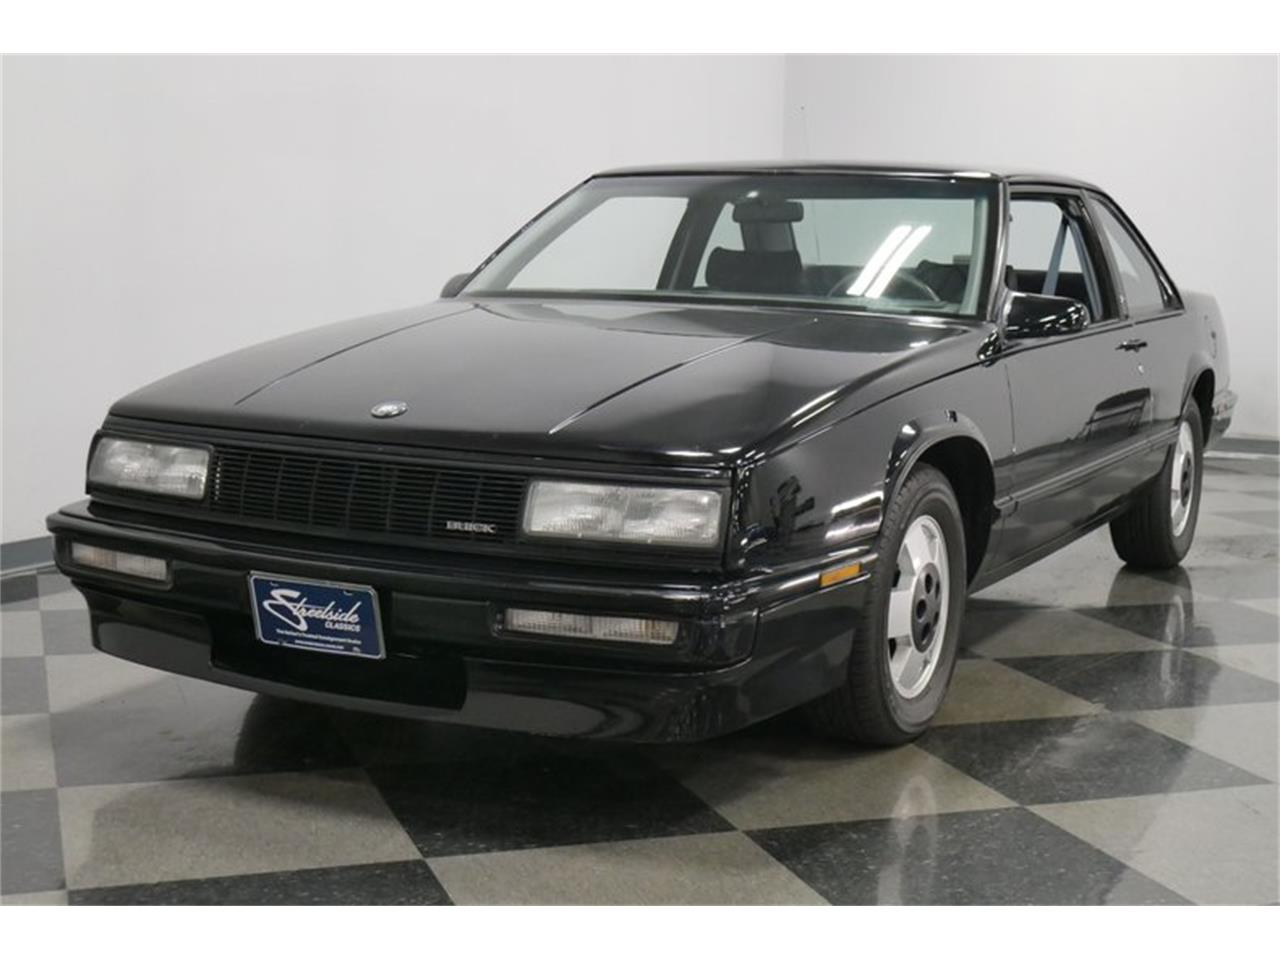 Large Picture of 1989 LeSabre located in Lavergne Tennessee - $9,995.00 Offered by Streetside Classics - Nashville - QRKK